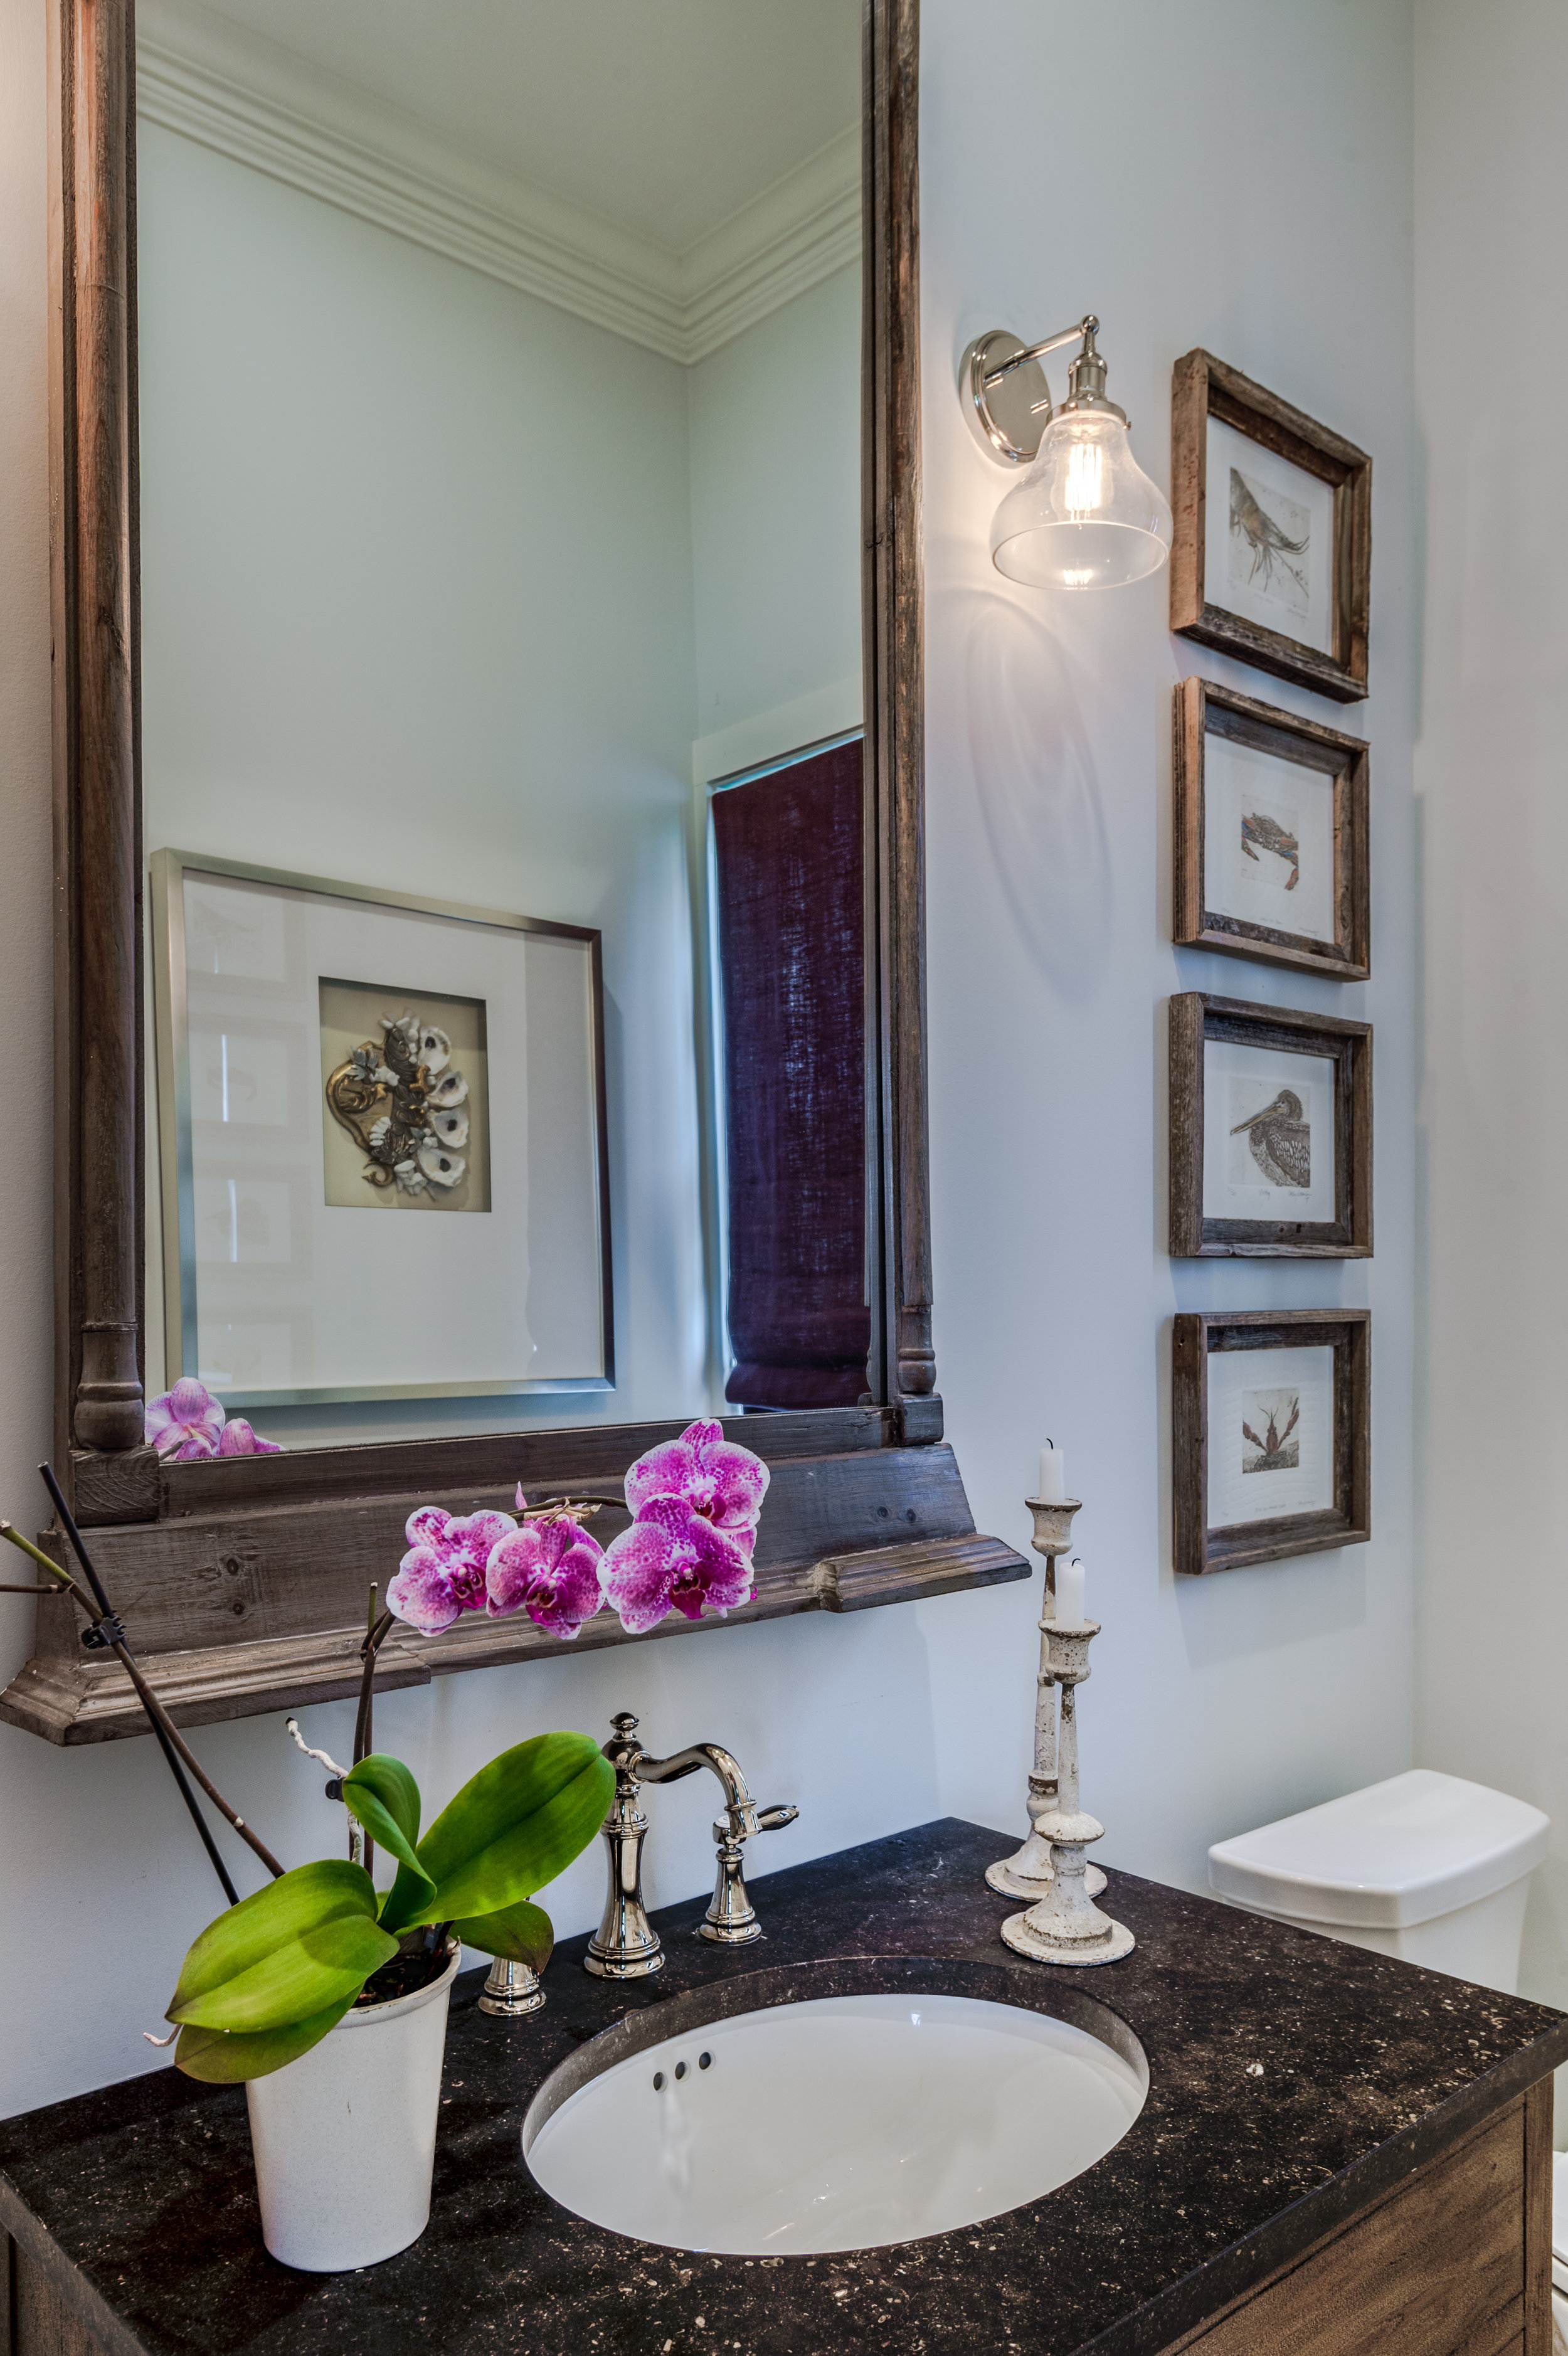 KHB Interiors powder room art new orleans old metairie lakeview interior decorator interior designer metairie.jpg